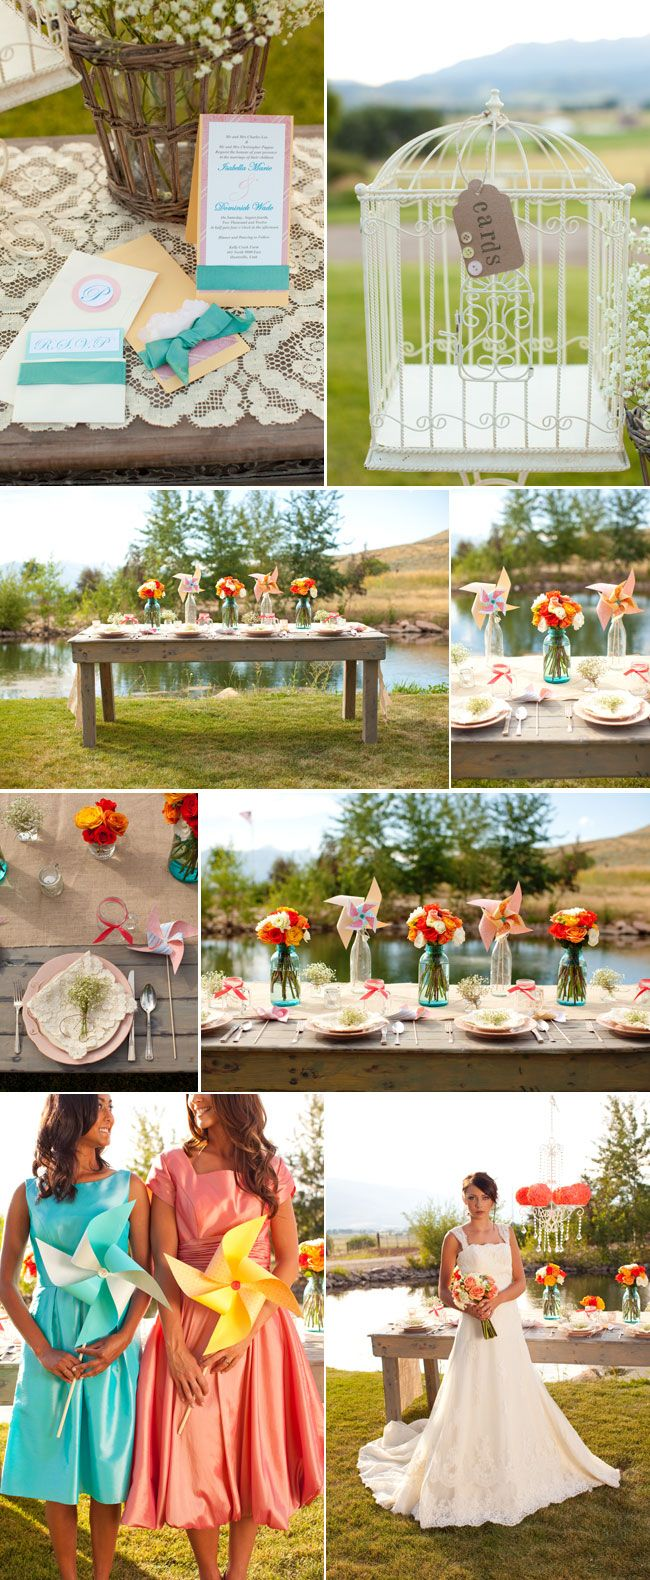 Farm Sweet Styled Shoot | Love and Lavender love the cheerful pinwheel centrepieces for picnic table